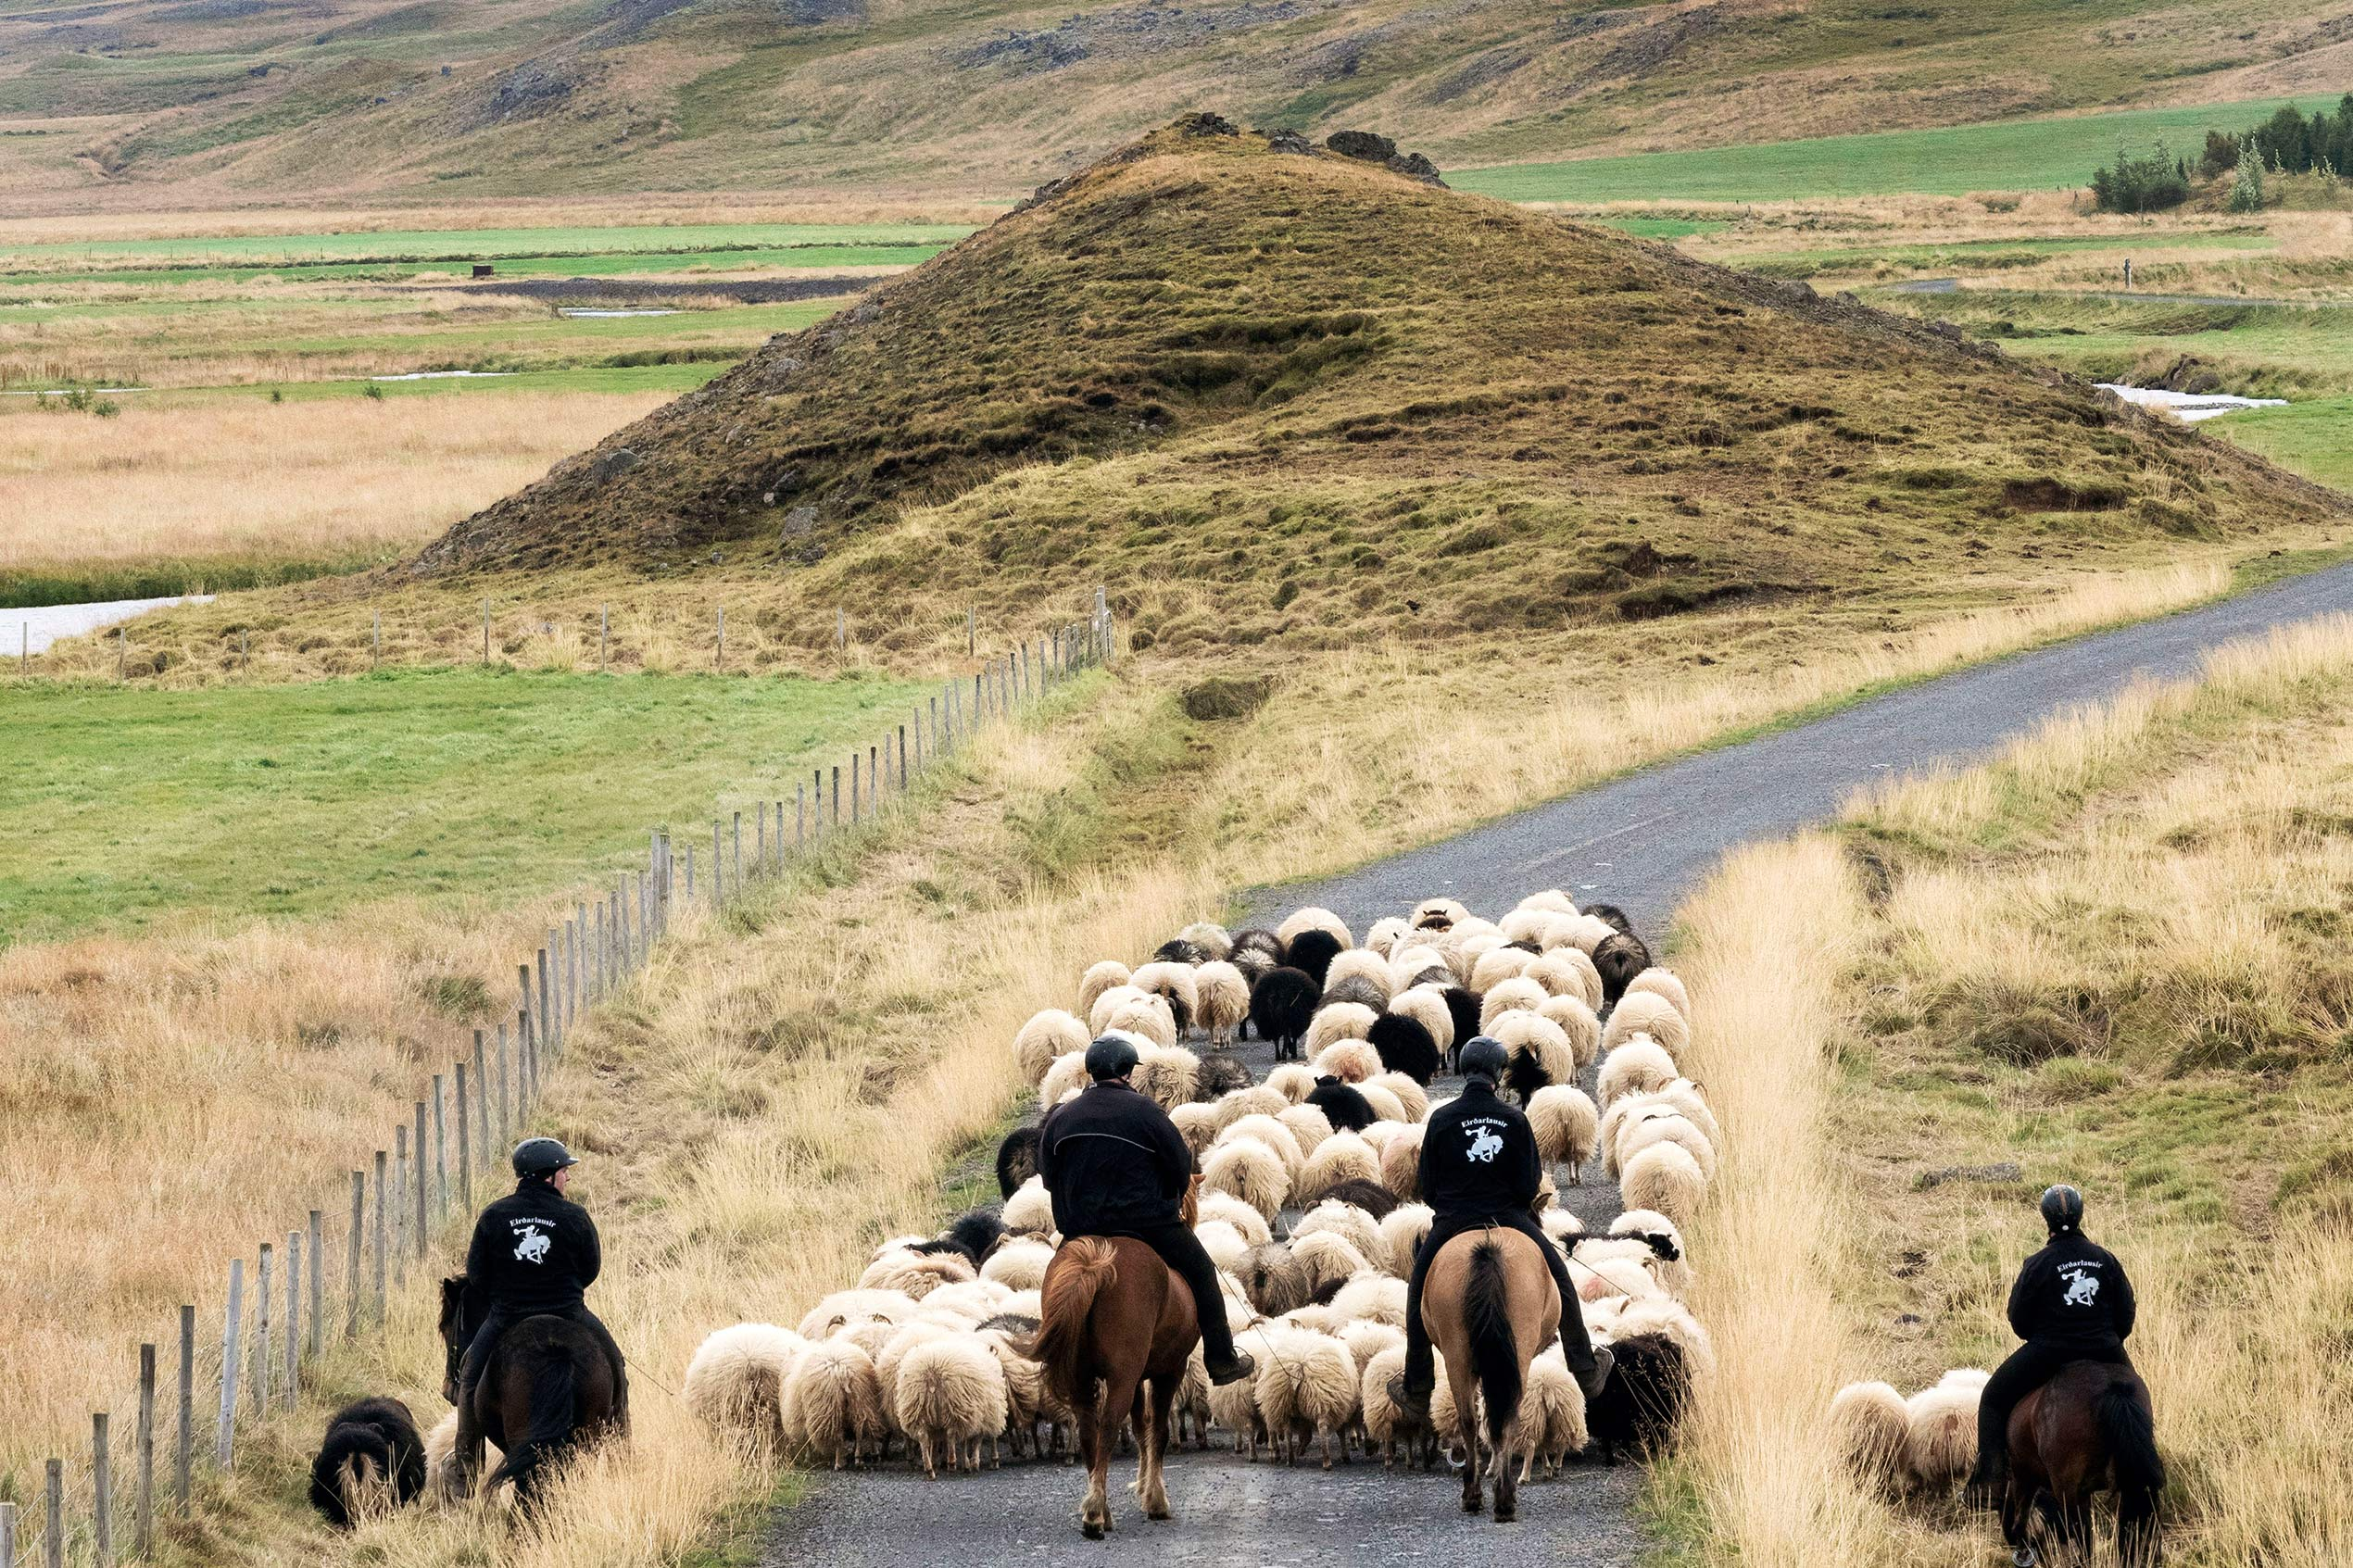 Four horses with horsemen guide a group of sheep at rettir in Iceland